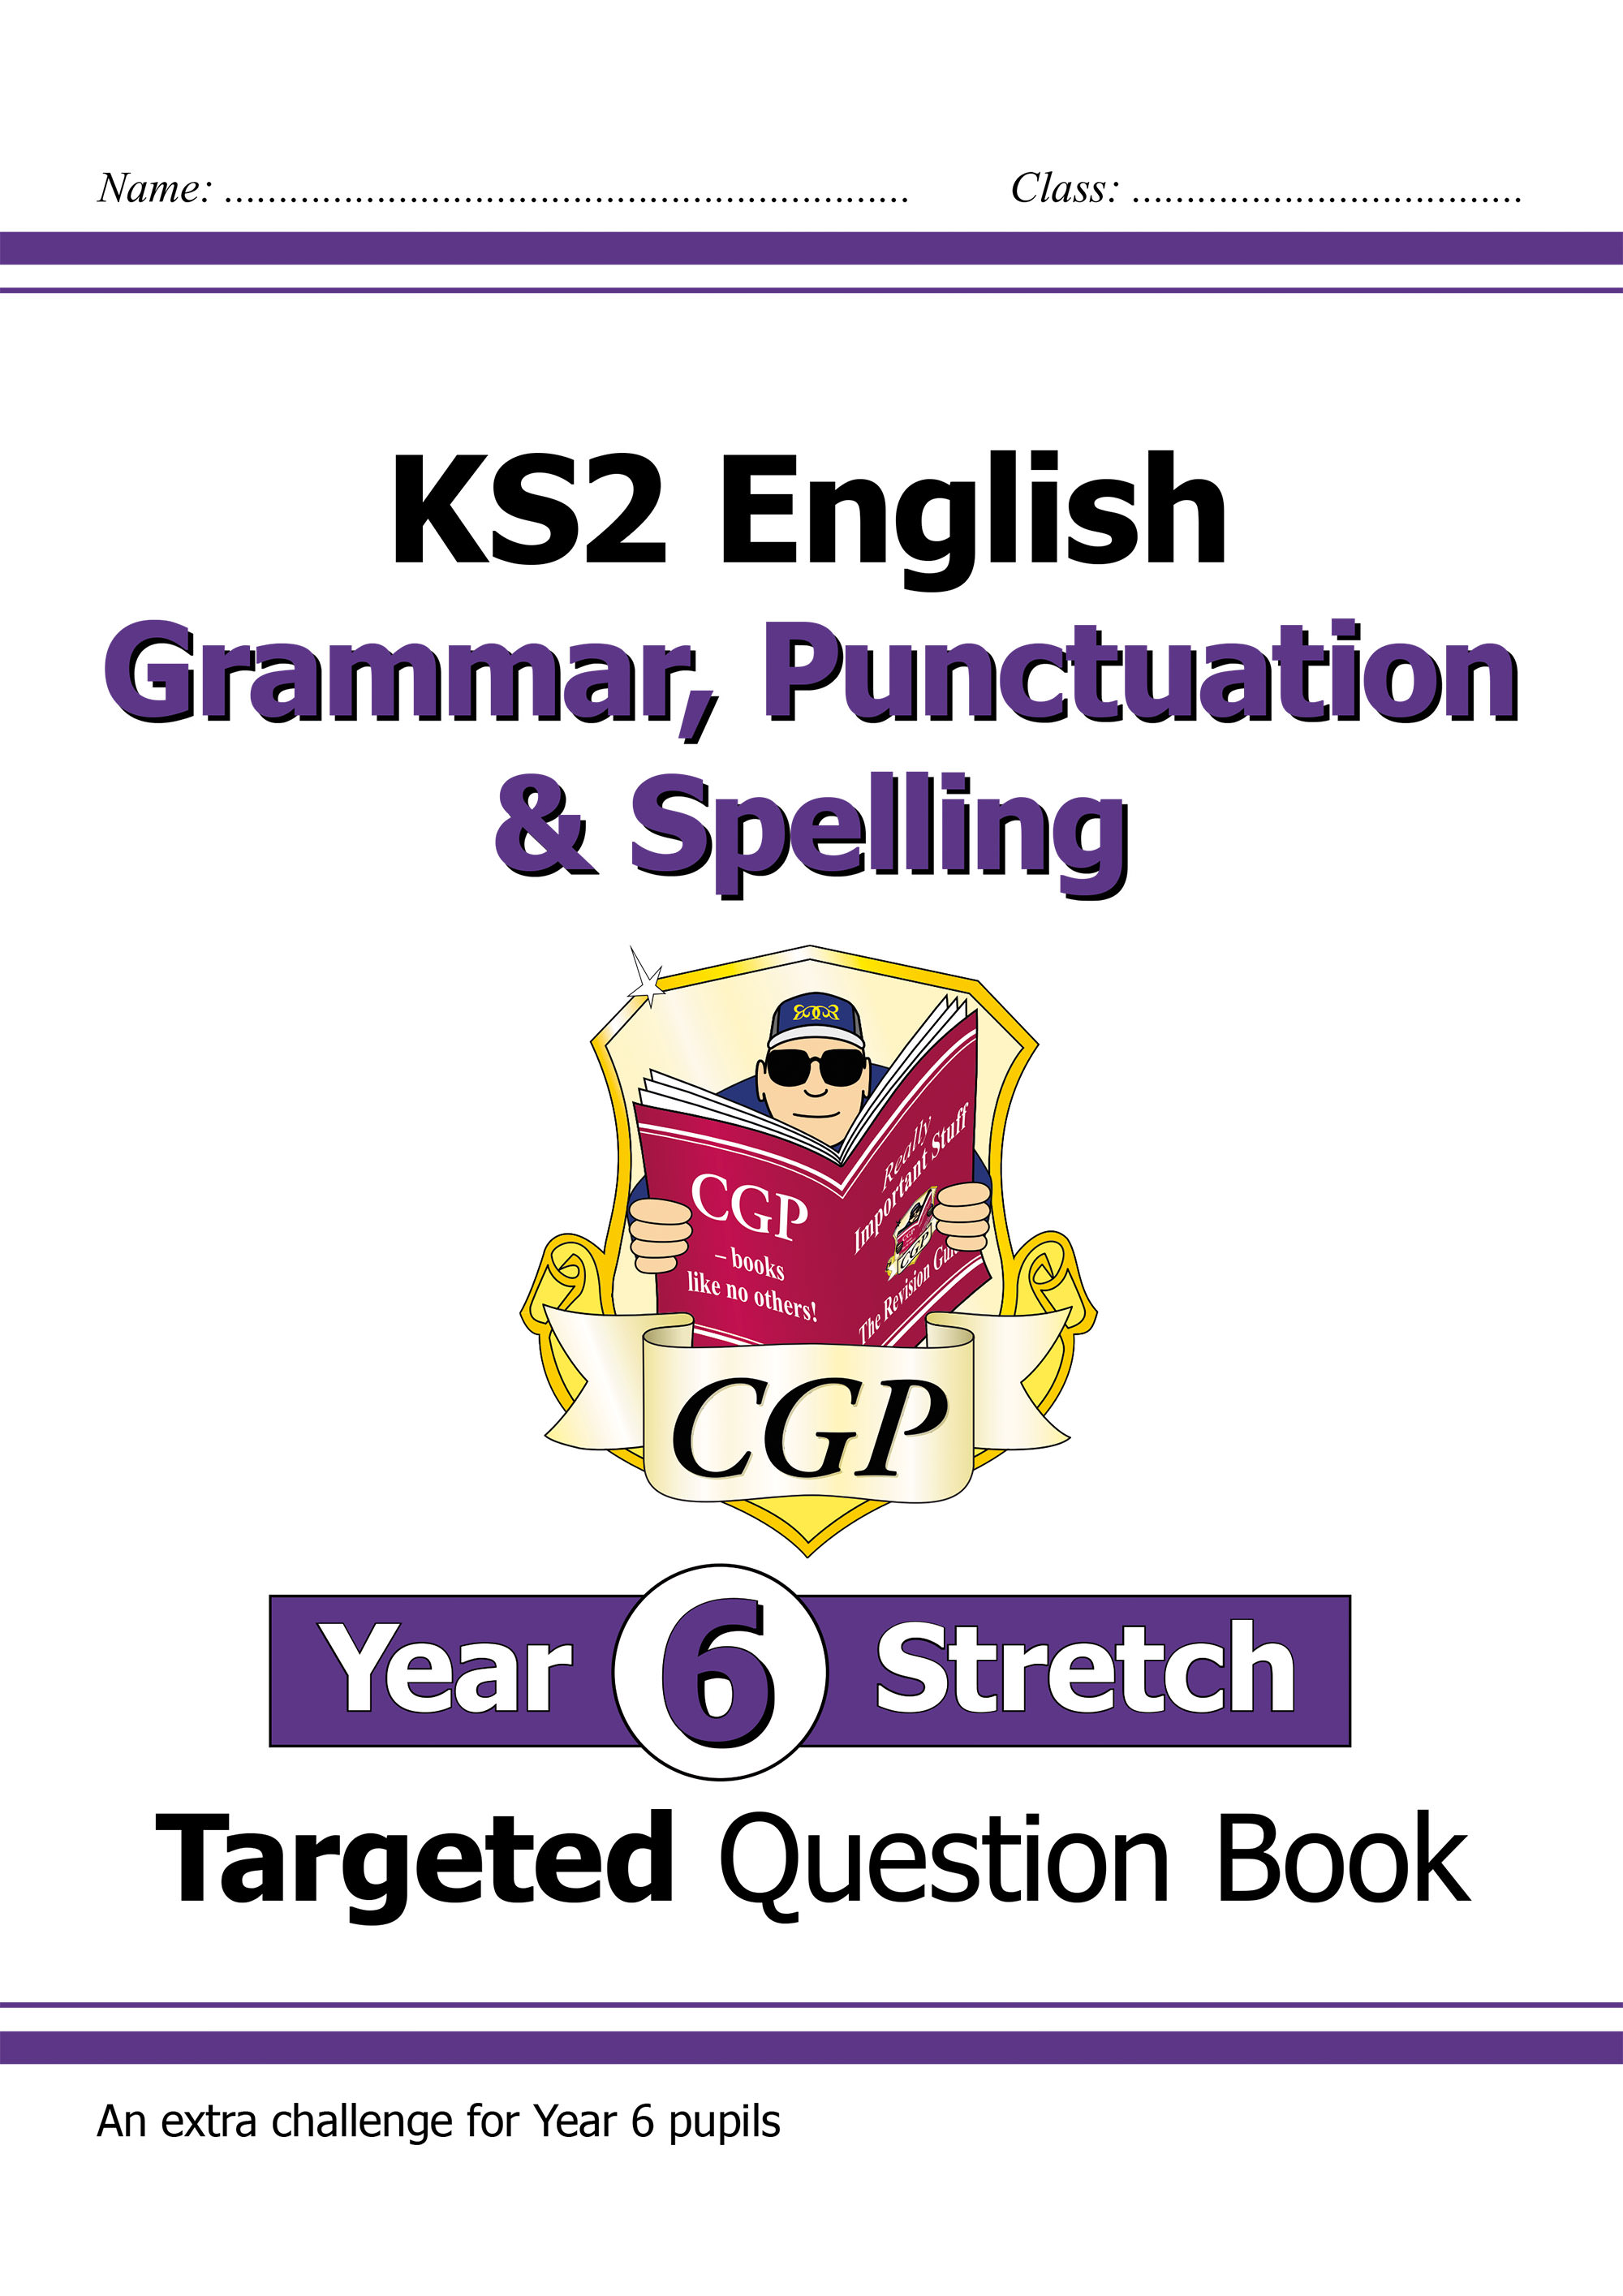 EG6HW21DK - KS2 English Targeted Question Book: Challenging Grammar, Punctuation & Spelling - Year 6